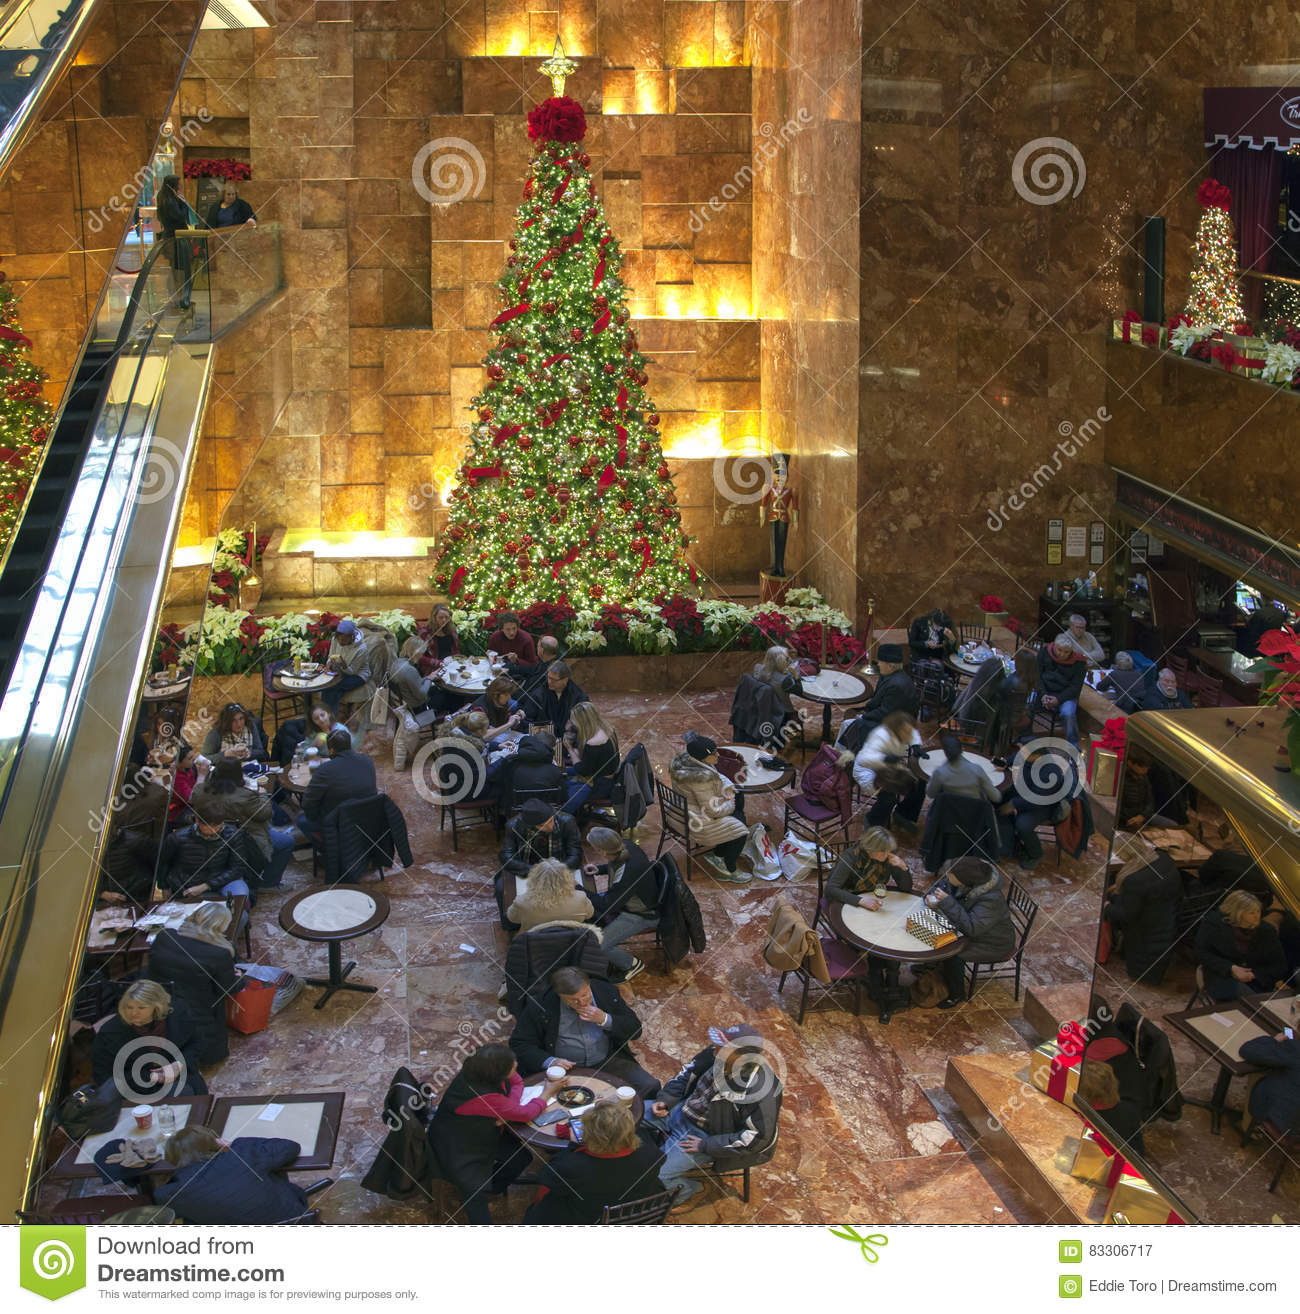 Cafe Area At Christmas Time Trump Tower In NYC Editorial Photography ...